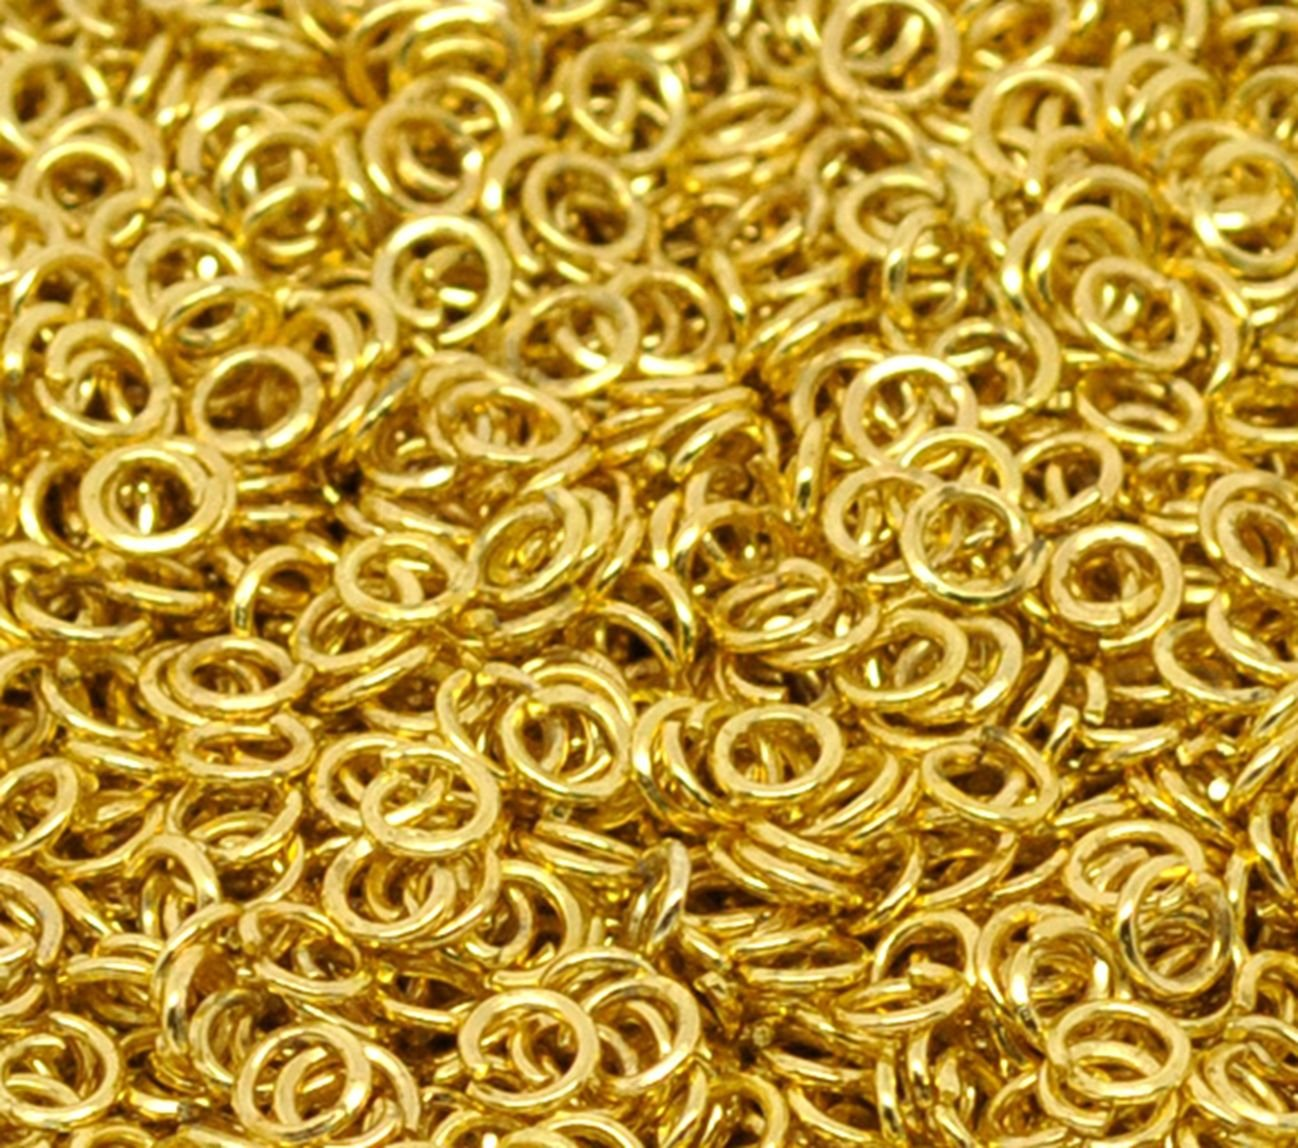 1000 x Gold Plated 4mm Open Jump Rings Jewellery Connector Finding Craft Beading. For Art and Crafts.